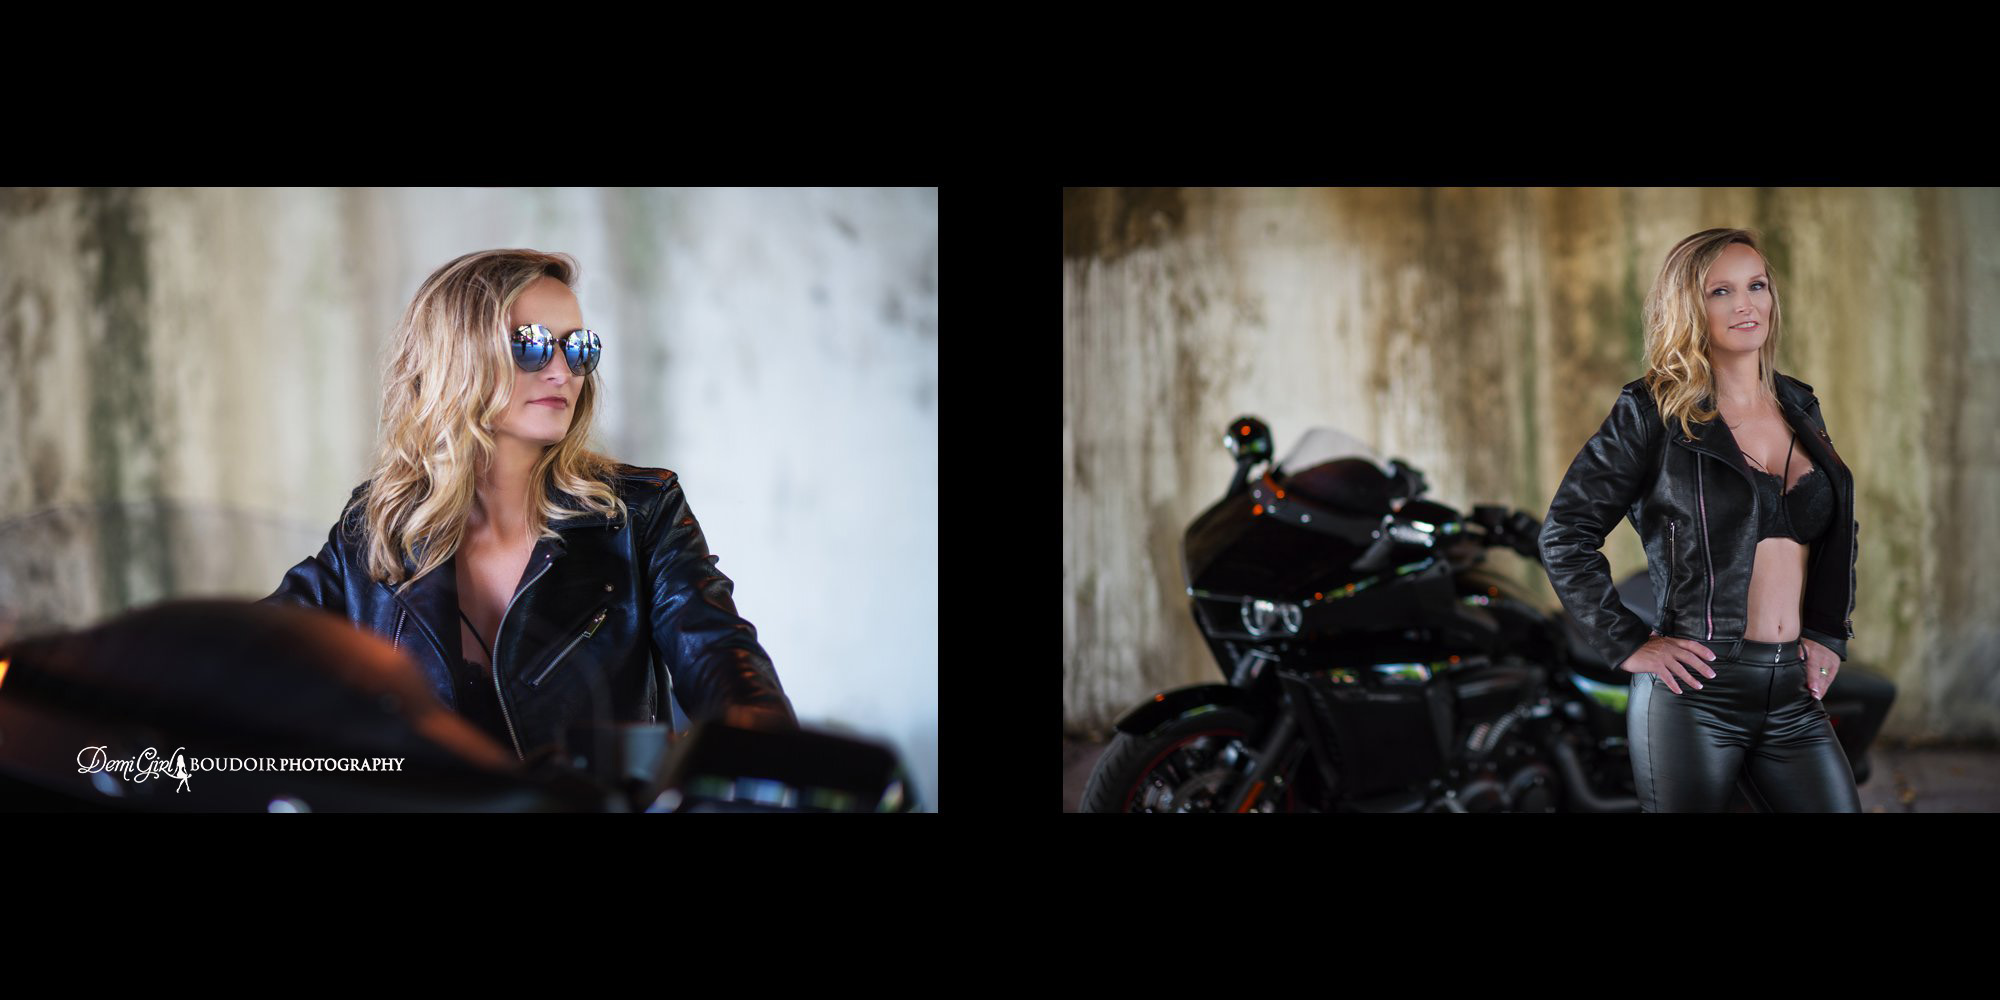 Motorcycle-Photos-of-Wife-with-Demi-Girl.jpg